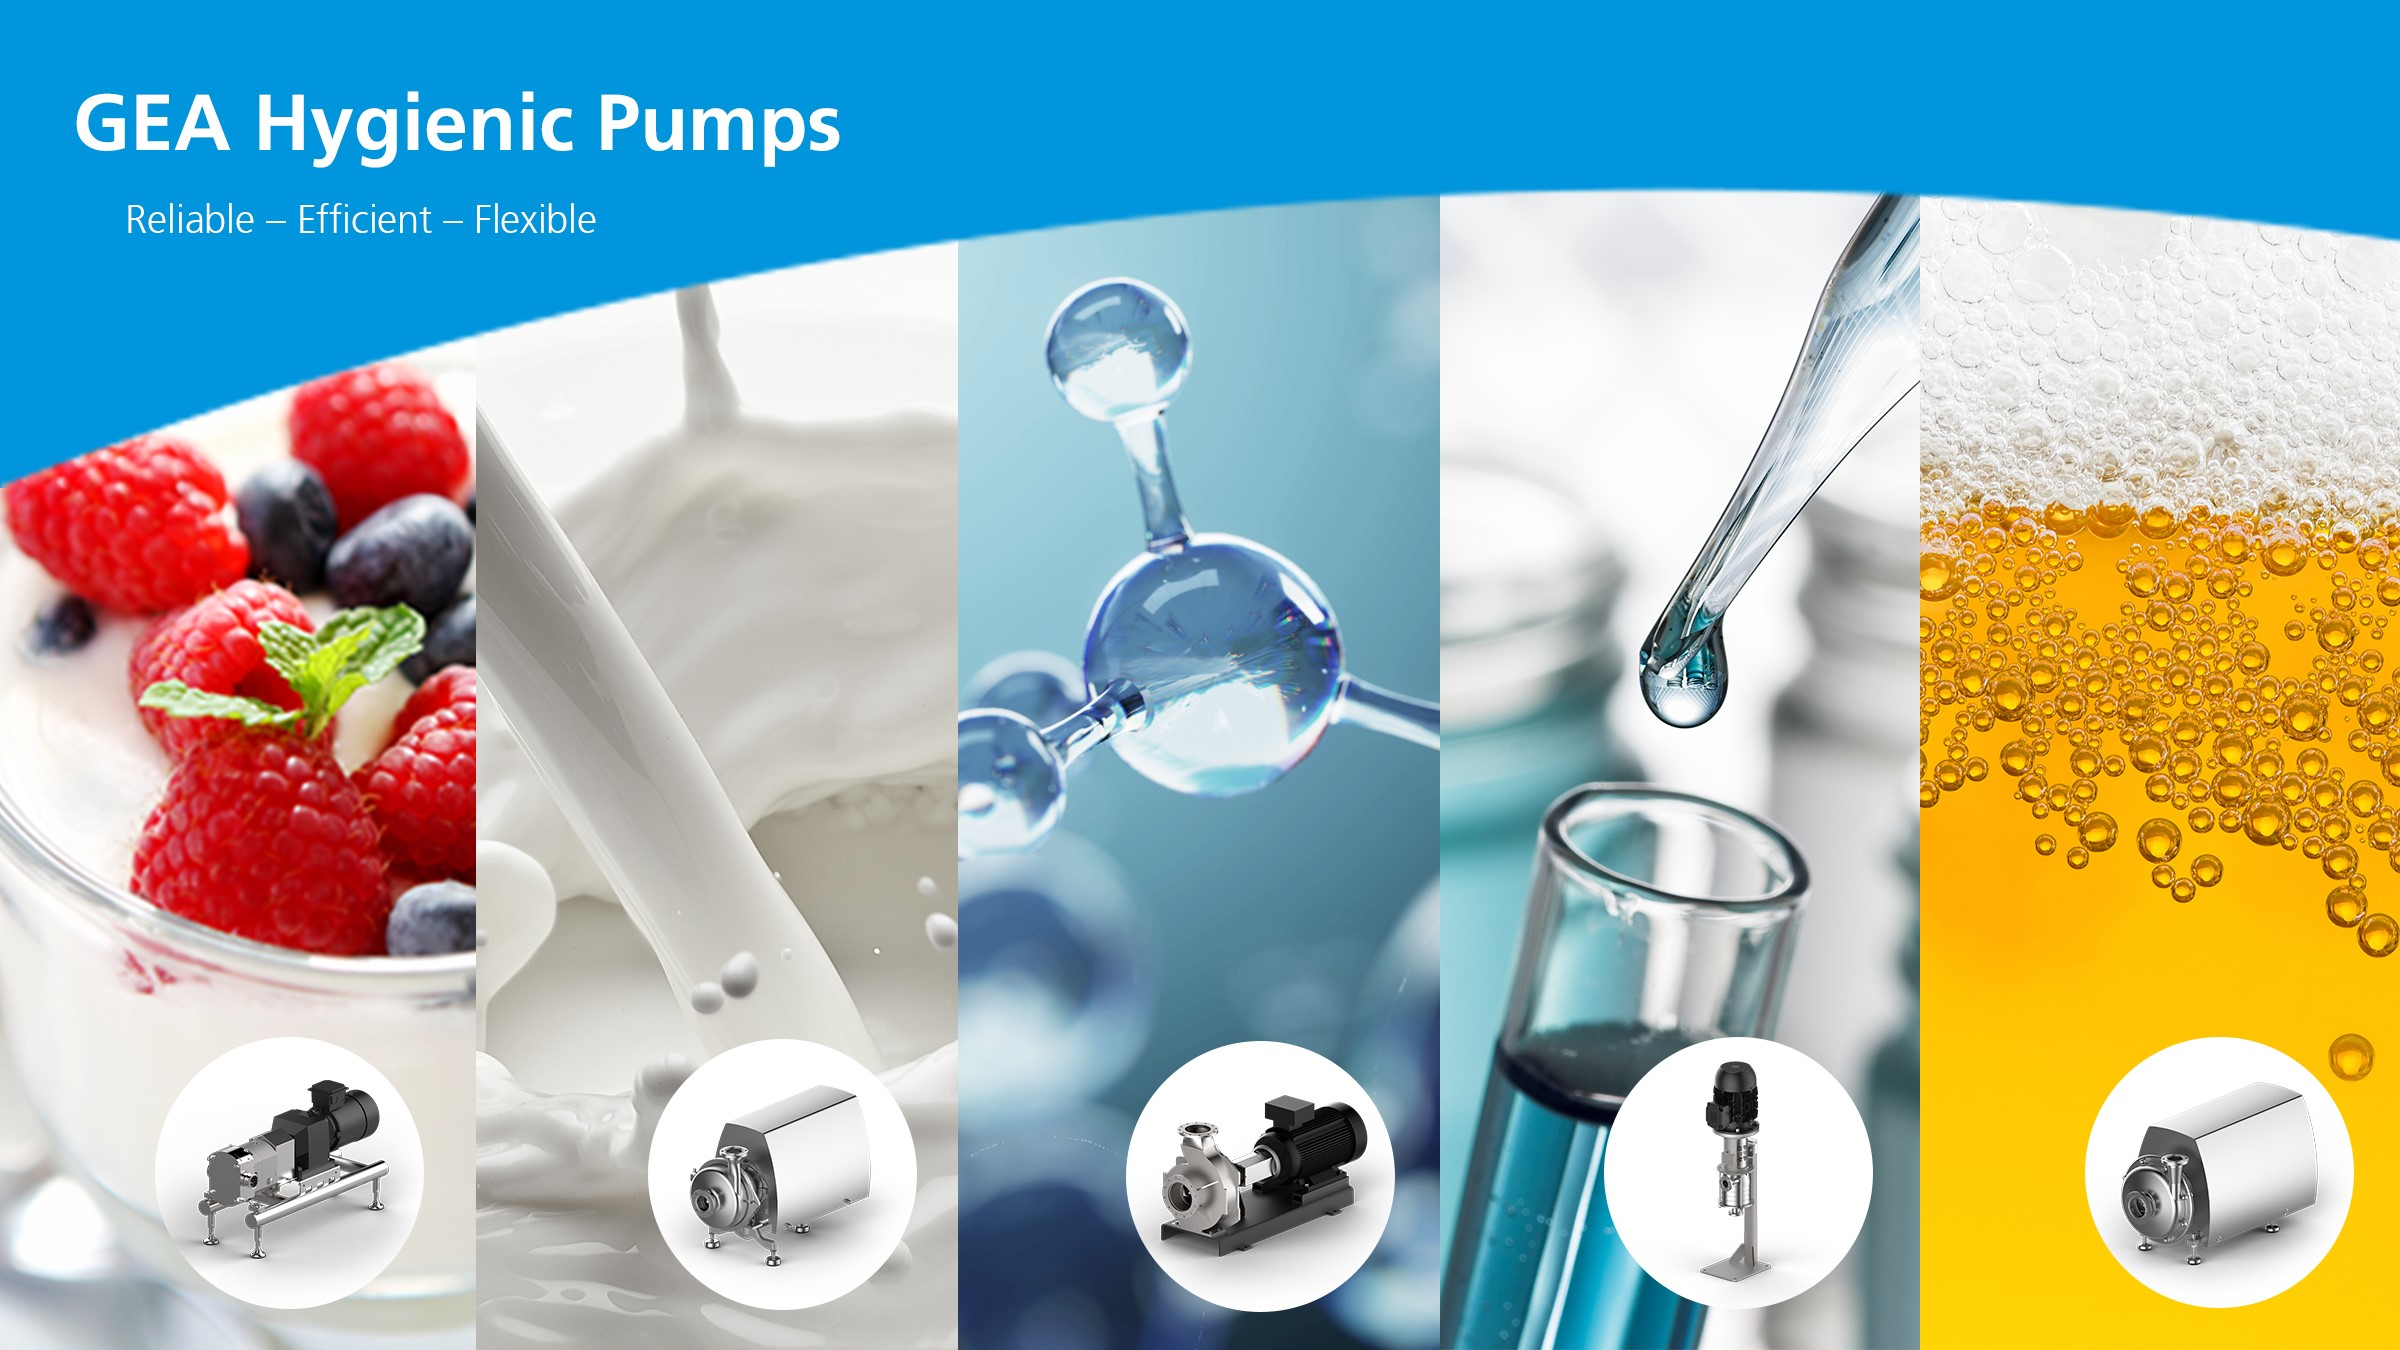 GEA Hygienic pumps food beverage pharma dairy chemicals